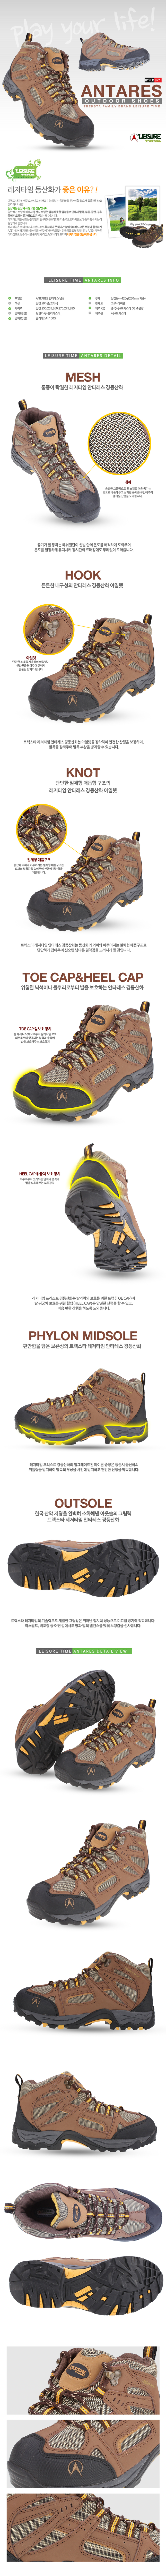 play your life 레저타임 ANTARES outdoor shoes - trekhan family brand leisure time 안타레스